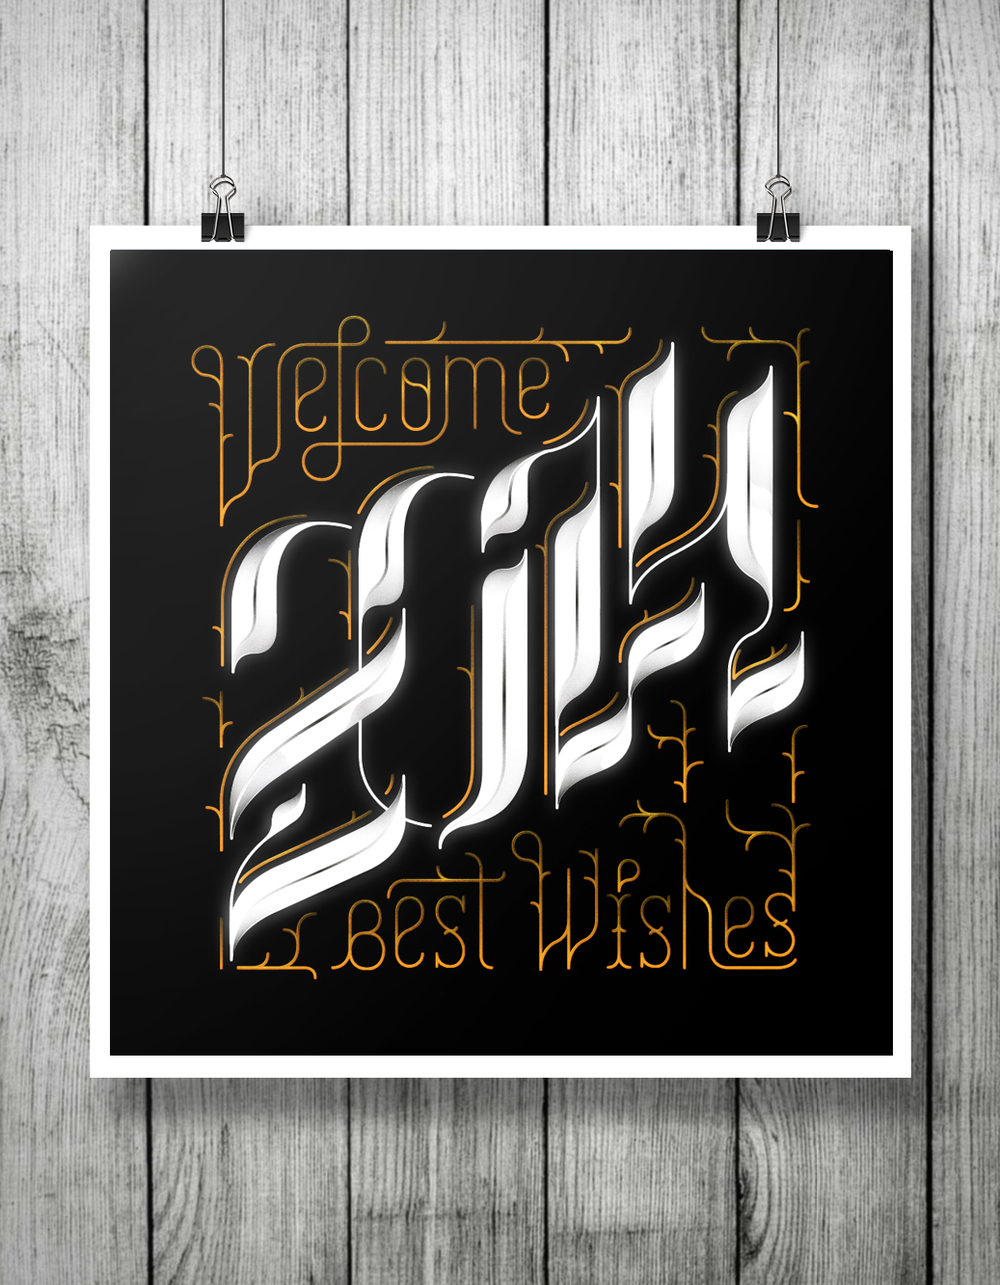 WELCOME 2014 BEST WISHES Greeting Happy 2014 - Behance Community Lettering.